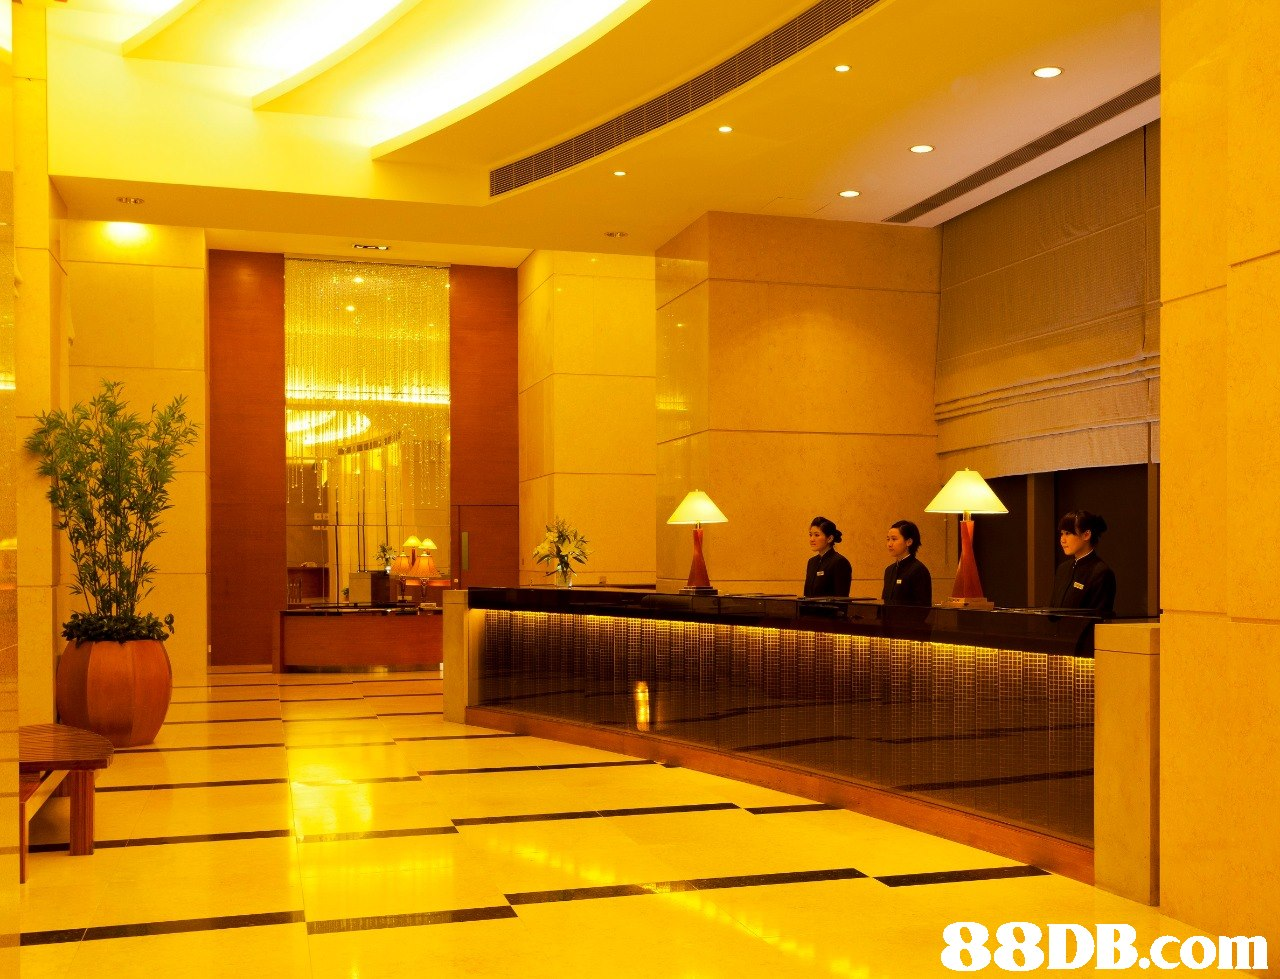 lobby,yellow,ceiling,interior design,function hall